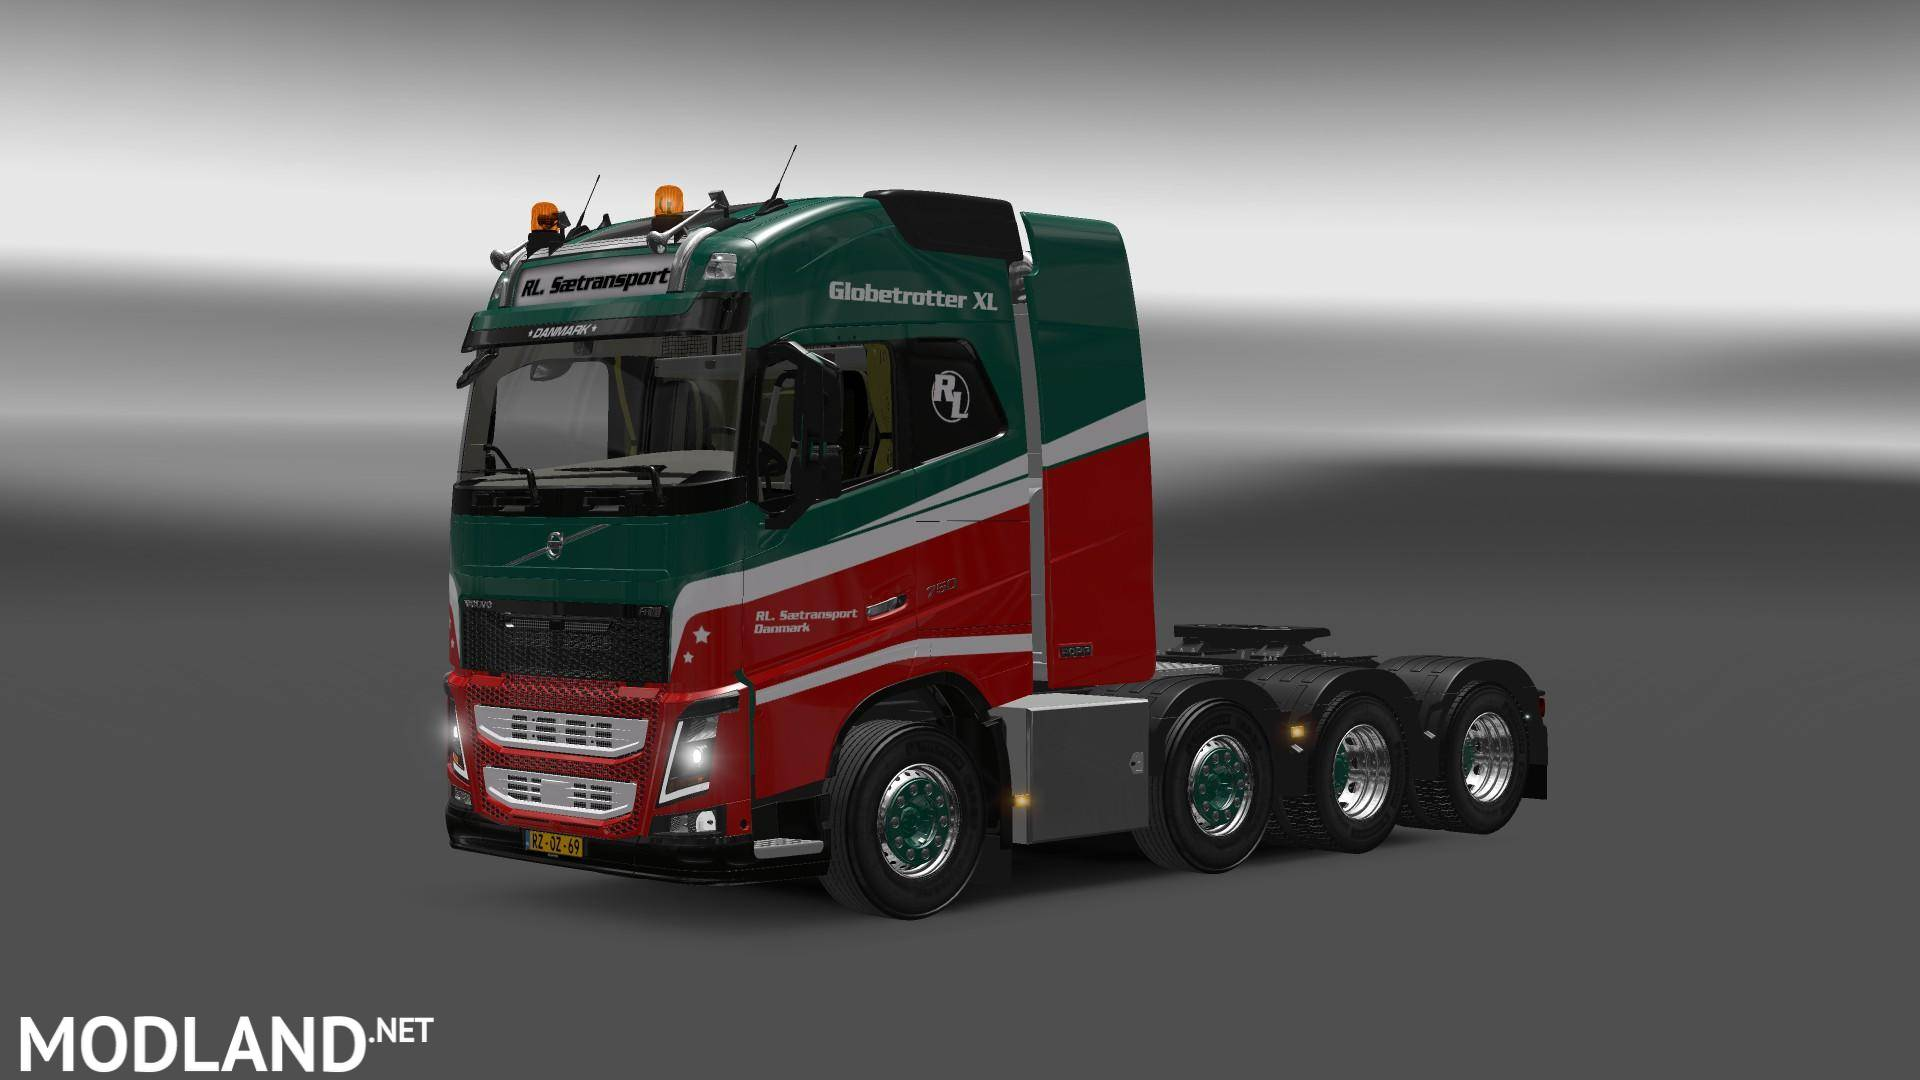 Volvo Fh 2013 8x4 Mod For Ets 2